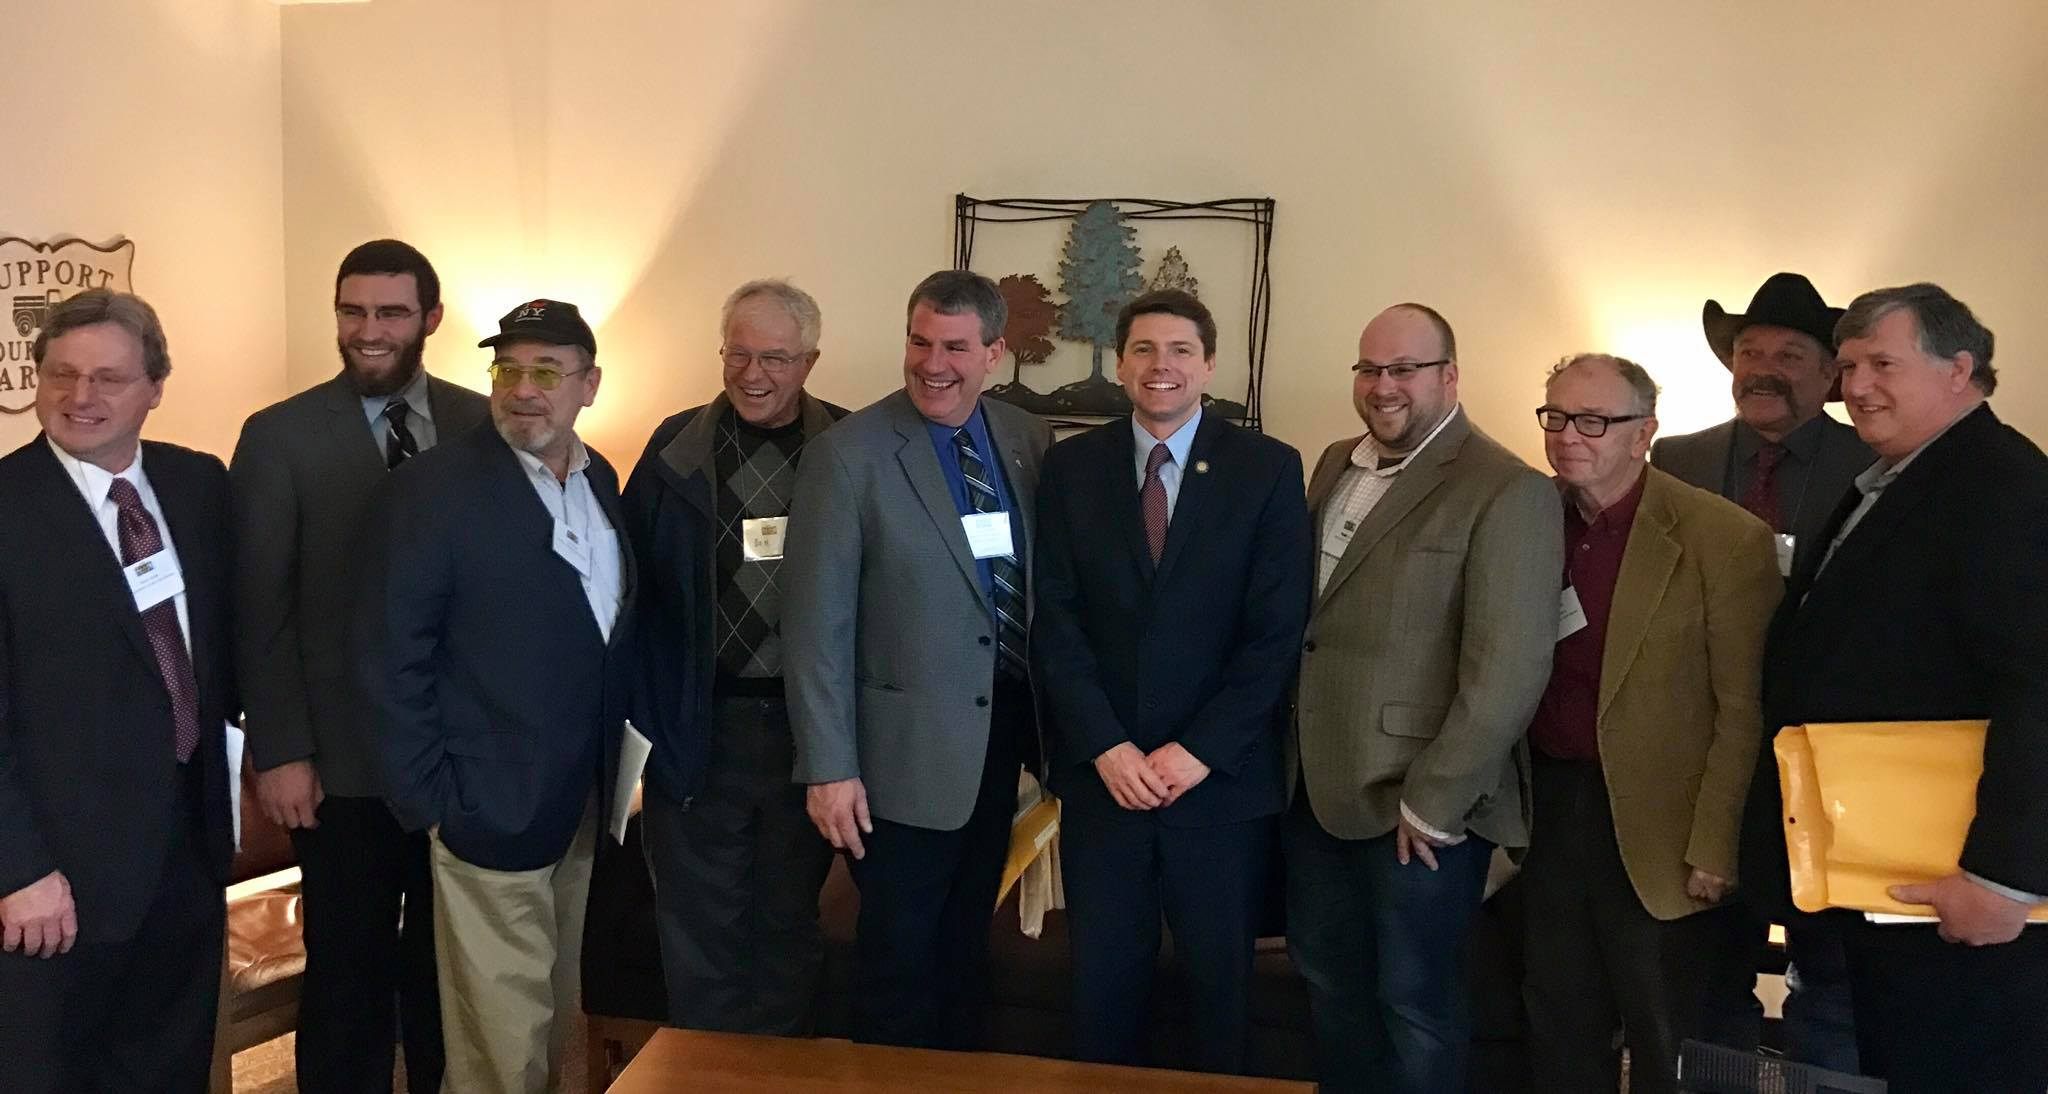 In March 2017, Assemblyman Jones met with local Farm Bureau members to learn about agricultural issues in the North Country. The state budget restores many important programs that provide vital support for local farms.<br />